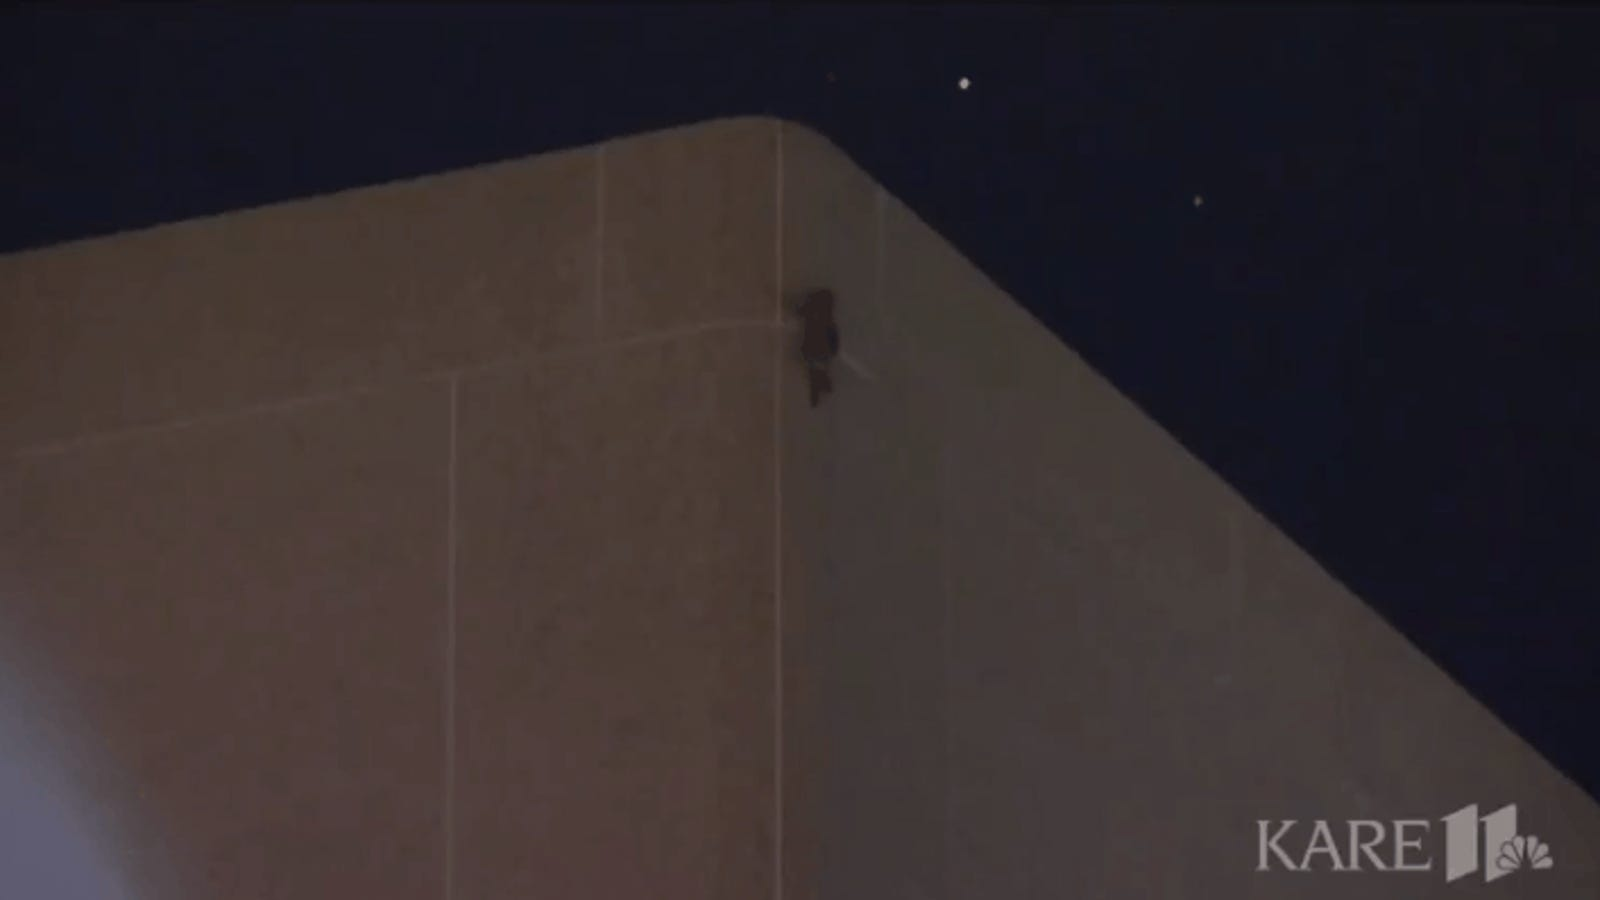 MPR Raccoon Reaches Roof After Climbing 23-Story Office Building, Becoming Internet Sensation